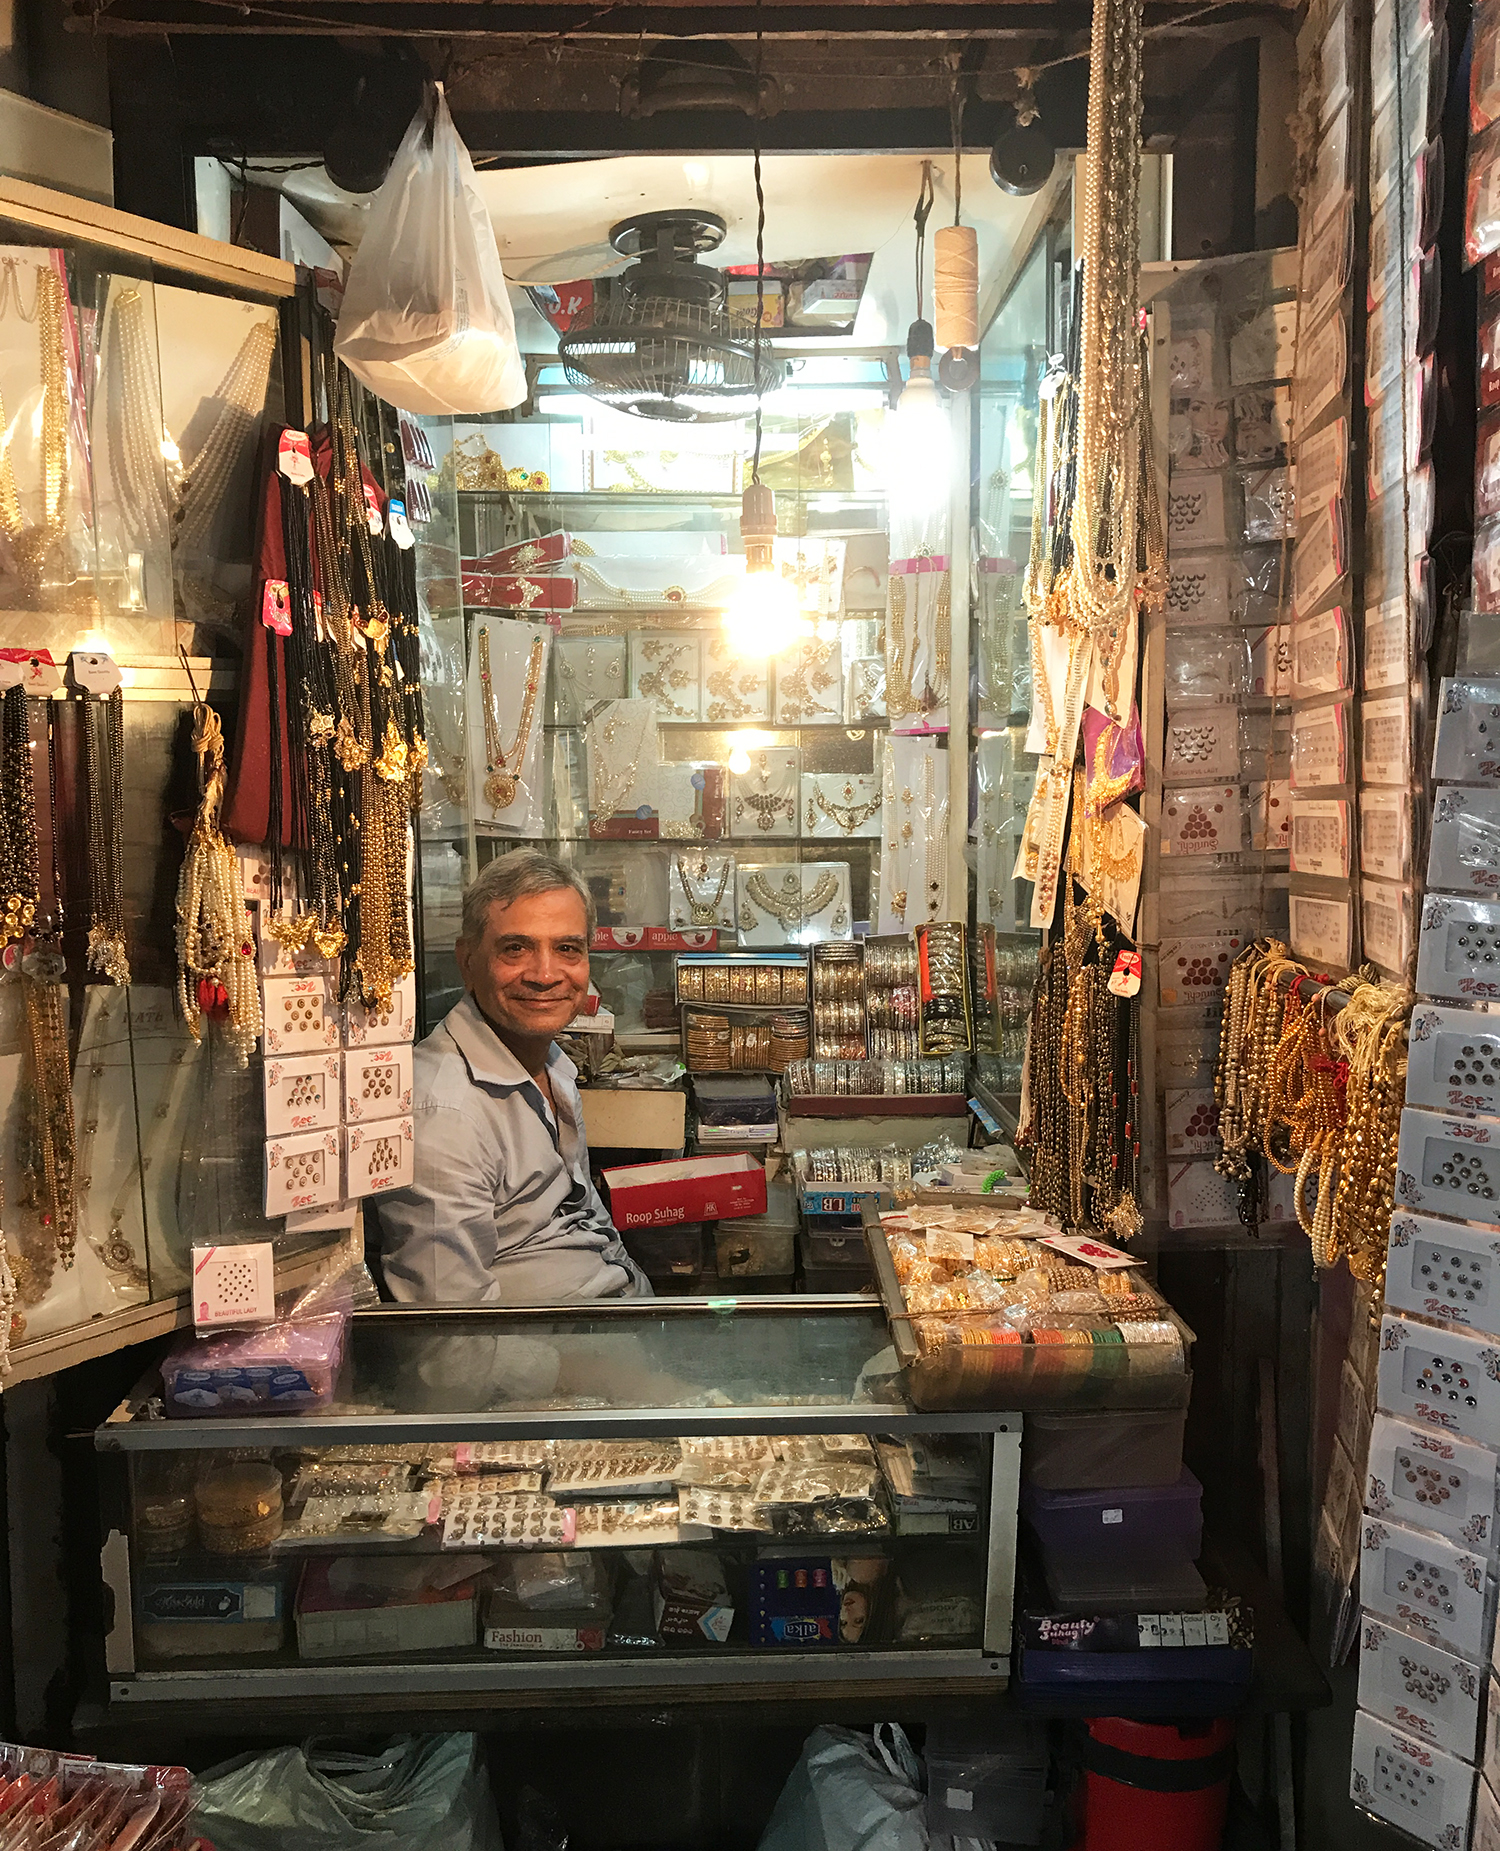 A tiny 70 years old jewelry shop and its owner.